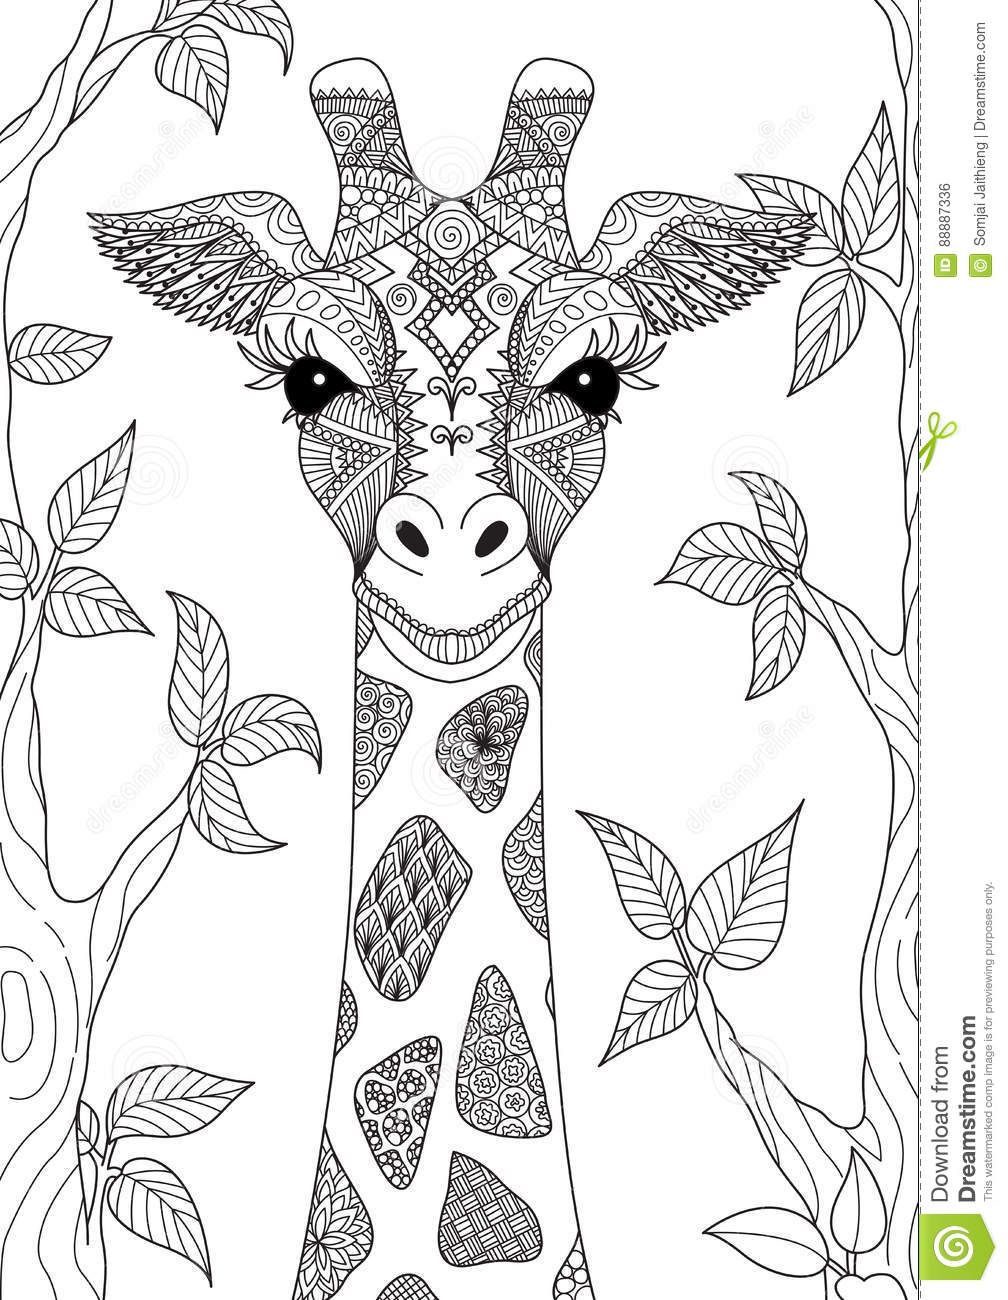 Giraffe stock vector. Illustration of monochrome, doodle